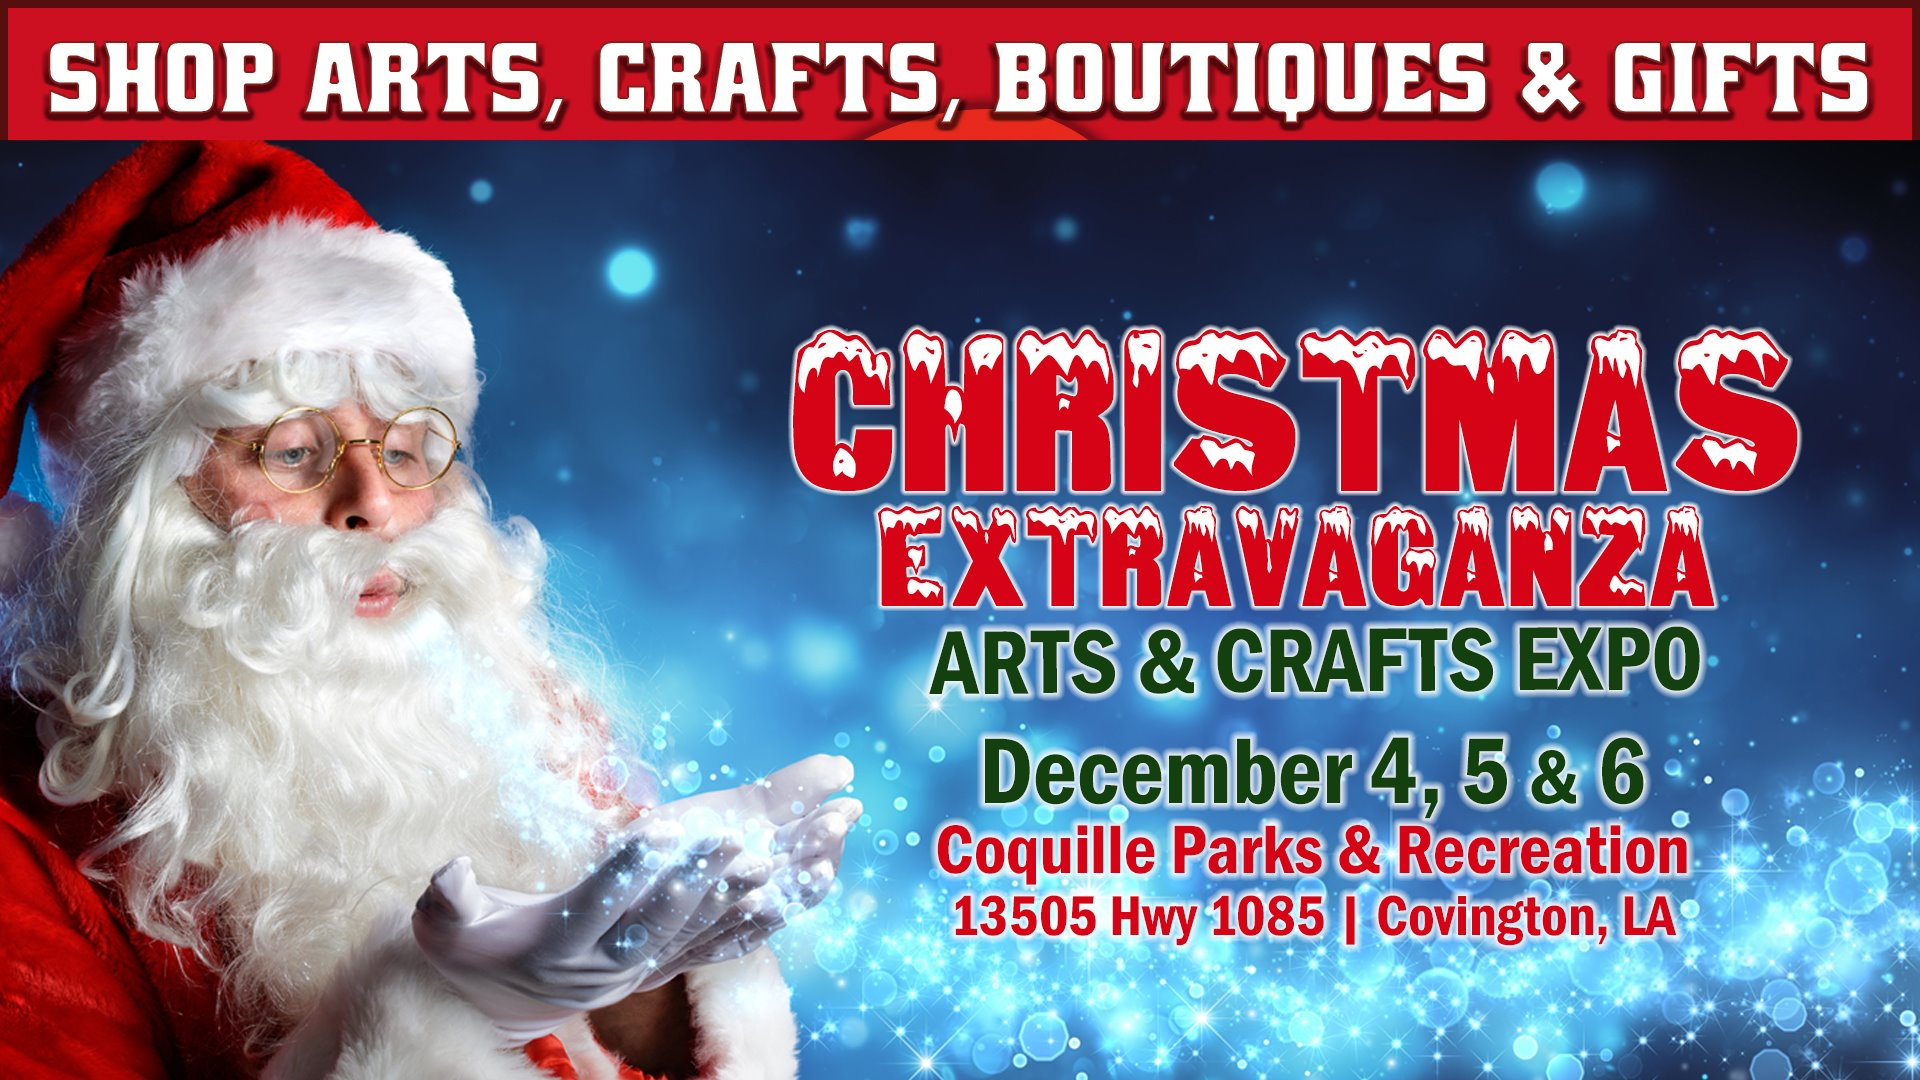 Christmas Extravaganza Arts & Crafts Expo at Coquille | Covington